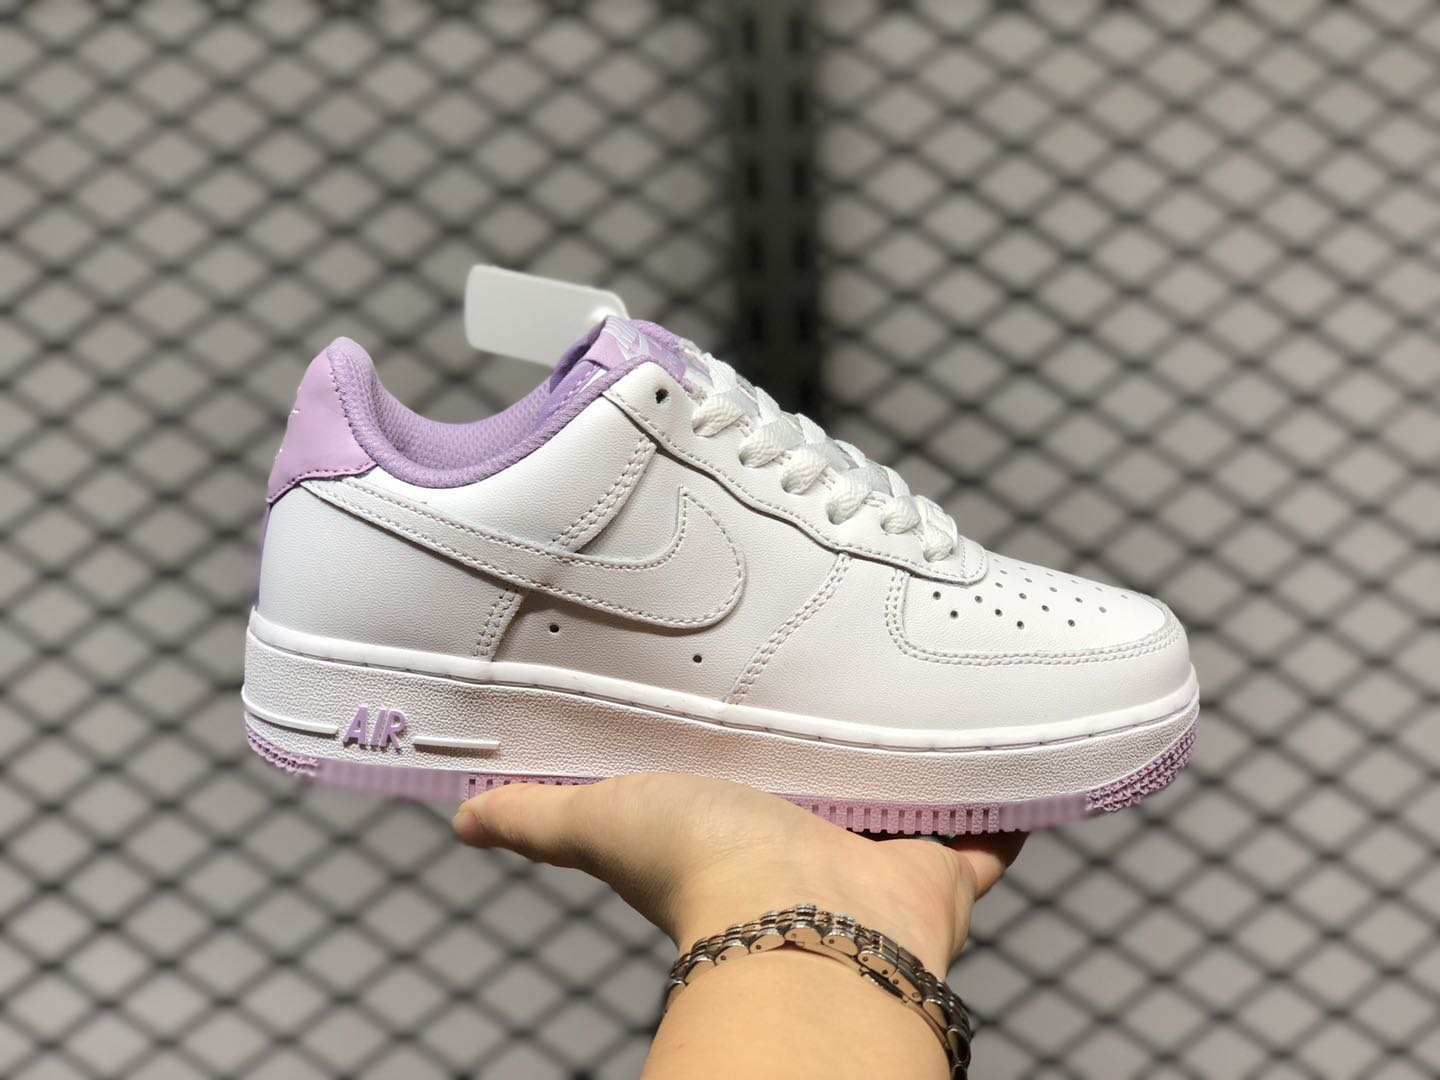 Nike Air Force 1 Low CD6915-100 White/Iced Lilac Online Sale ...